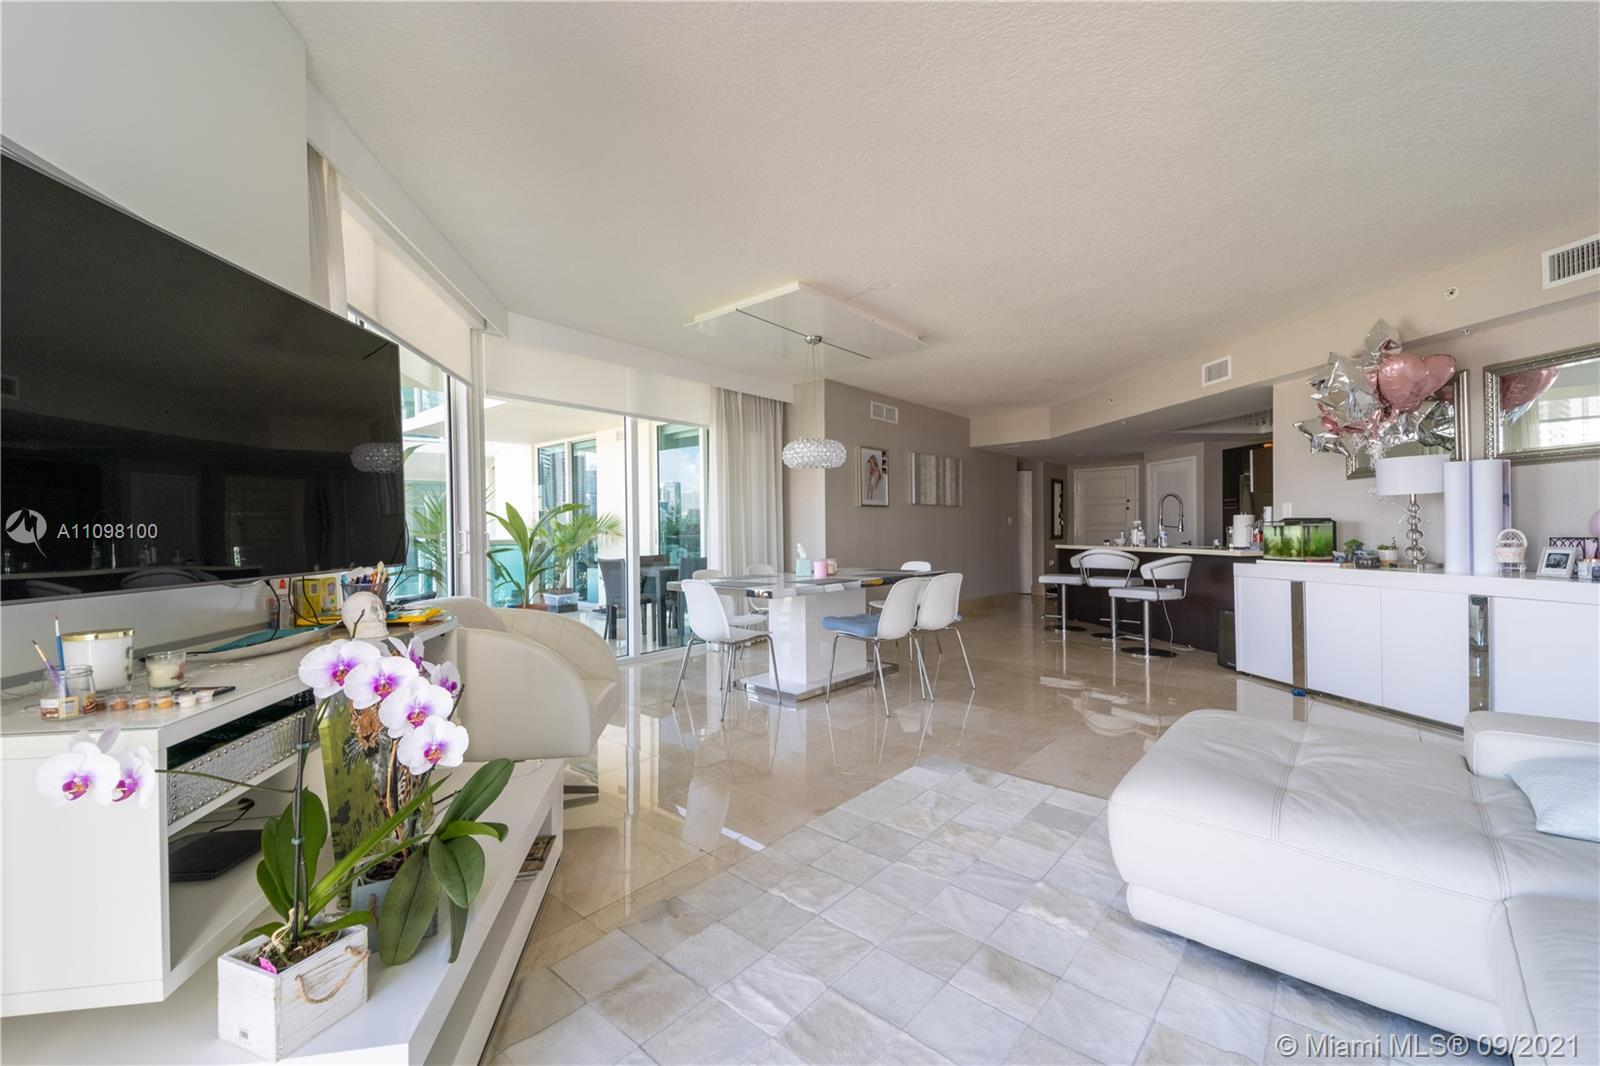 Moving to Florida? Or just moving? Take a look. Best priced 3 bedroom/2 bathroom in the heart of Sun